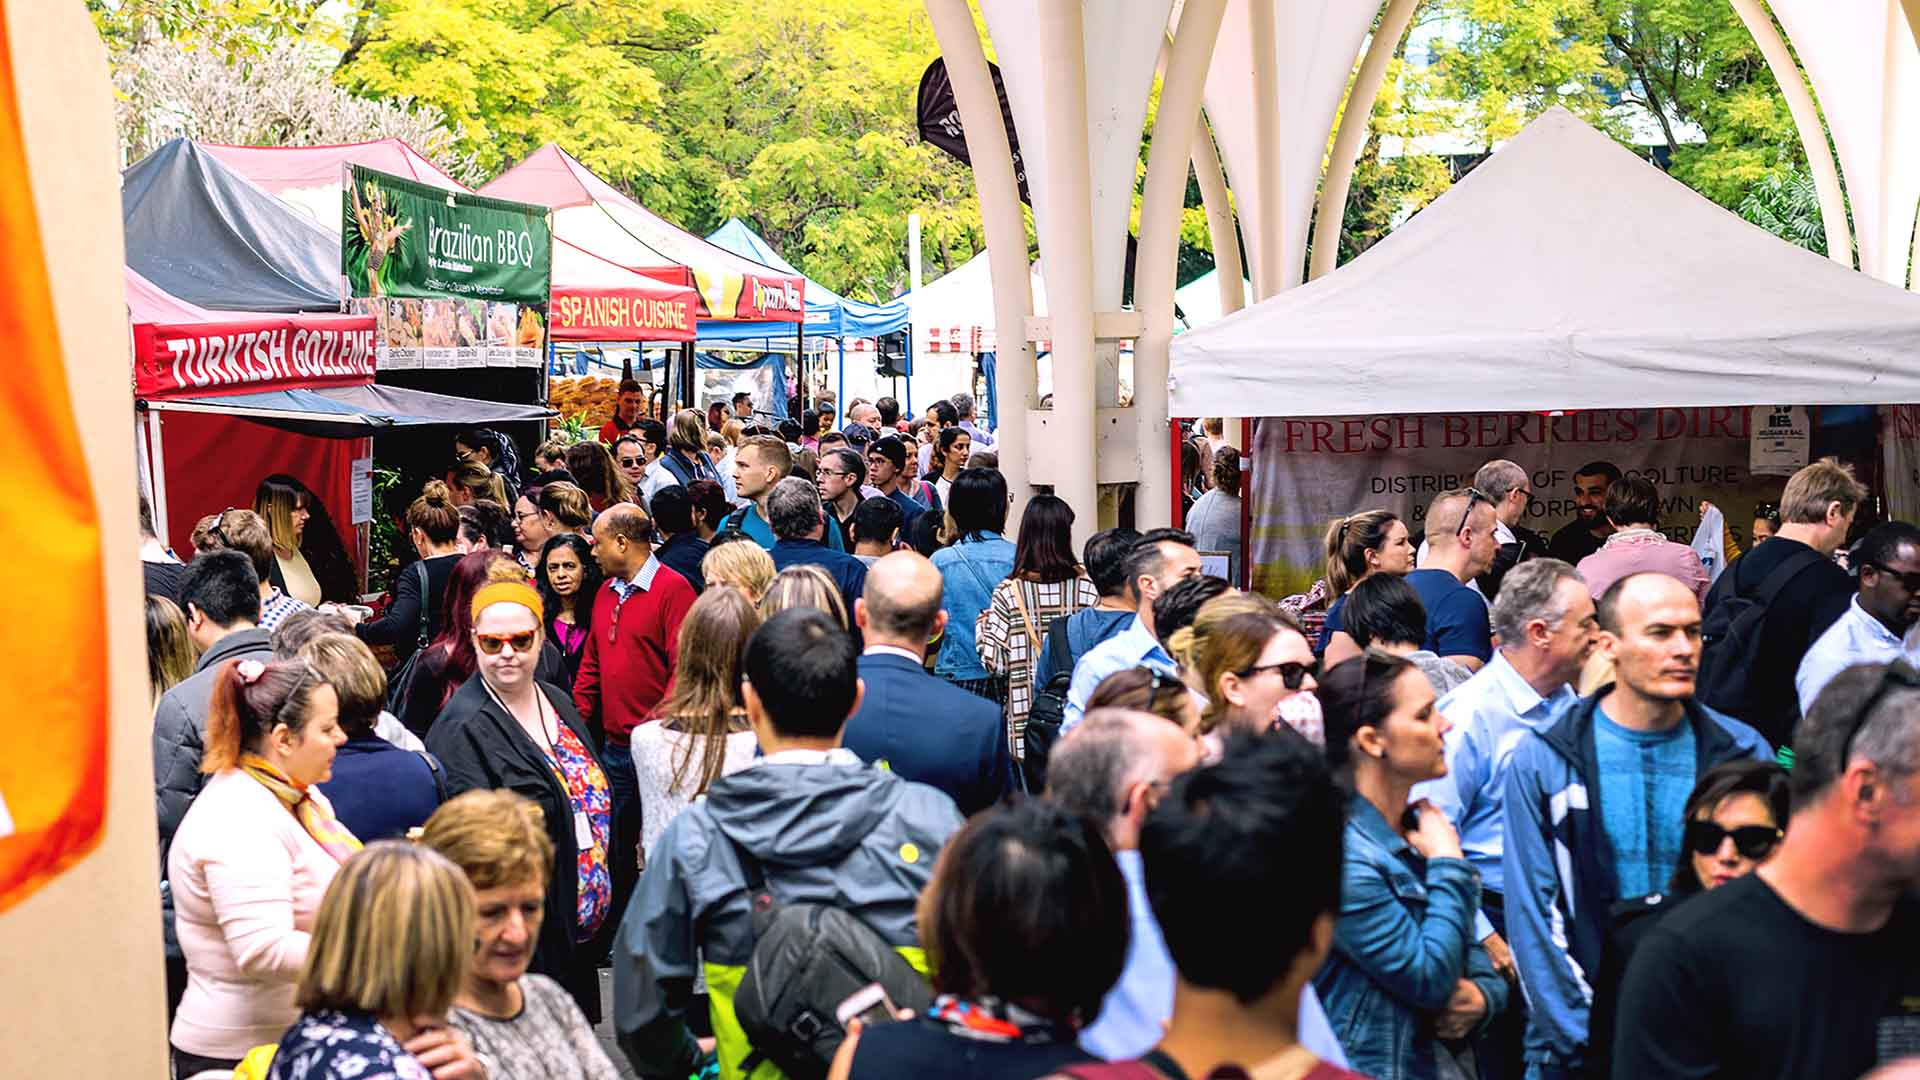 Brisbane City Cathedral Square Markets 2020